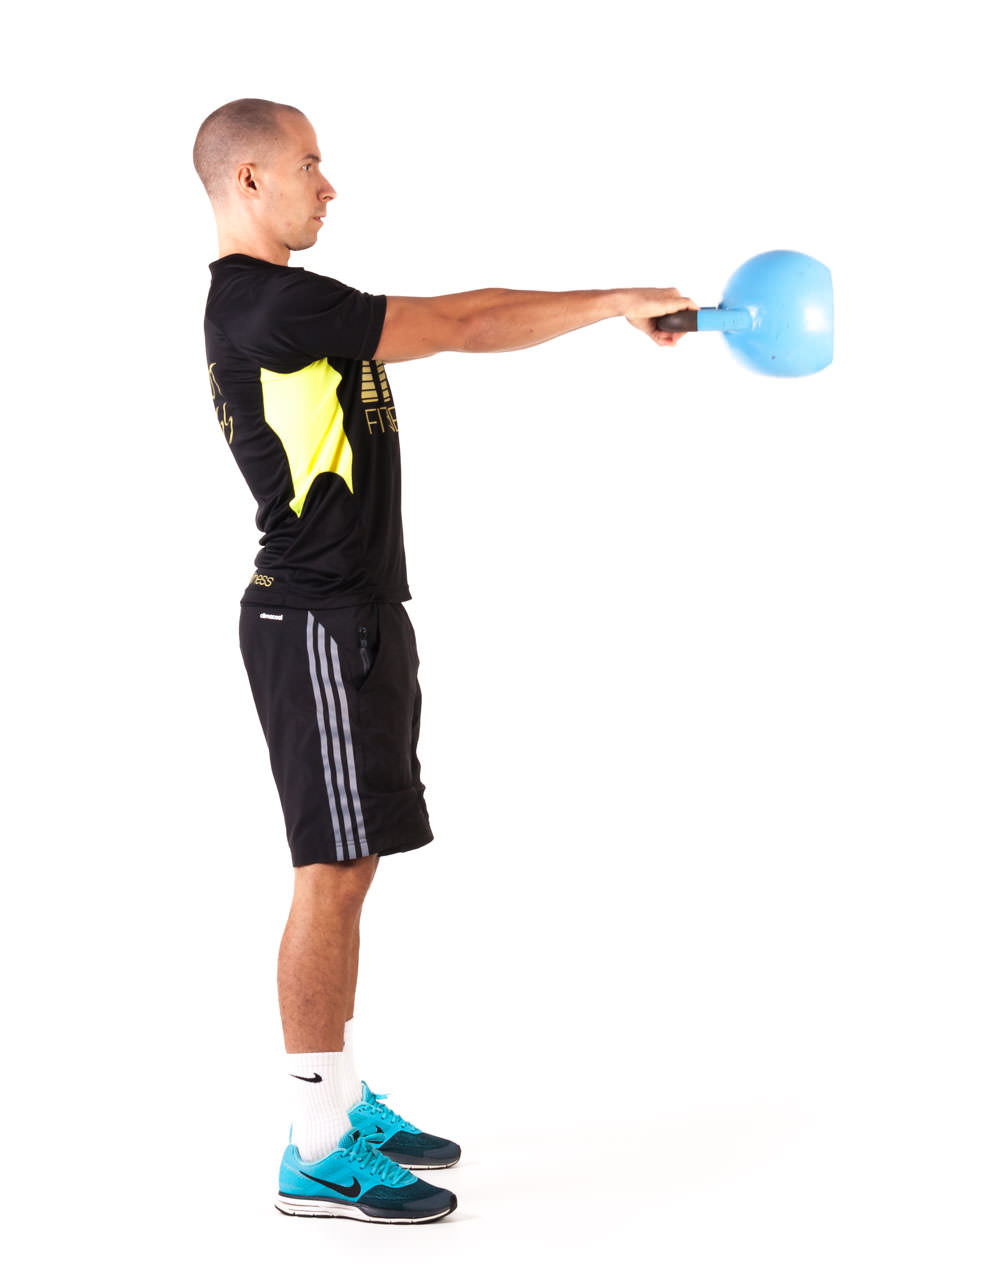 Two-Arm Kettlebell Swing frame #7